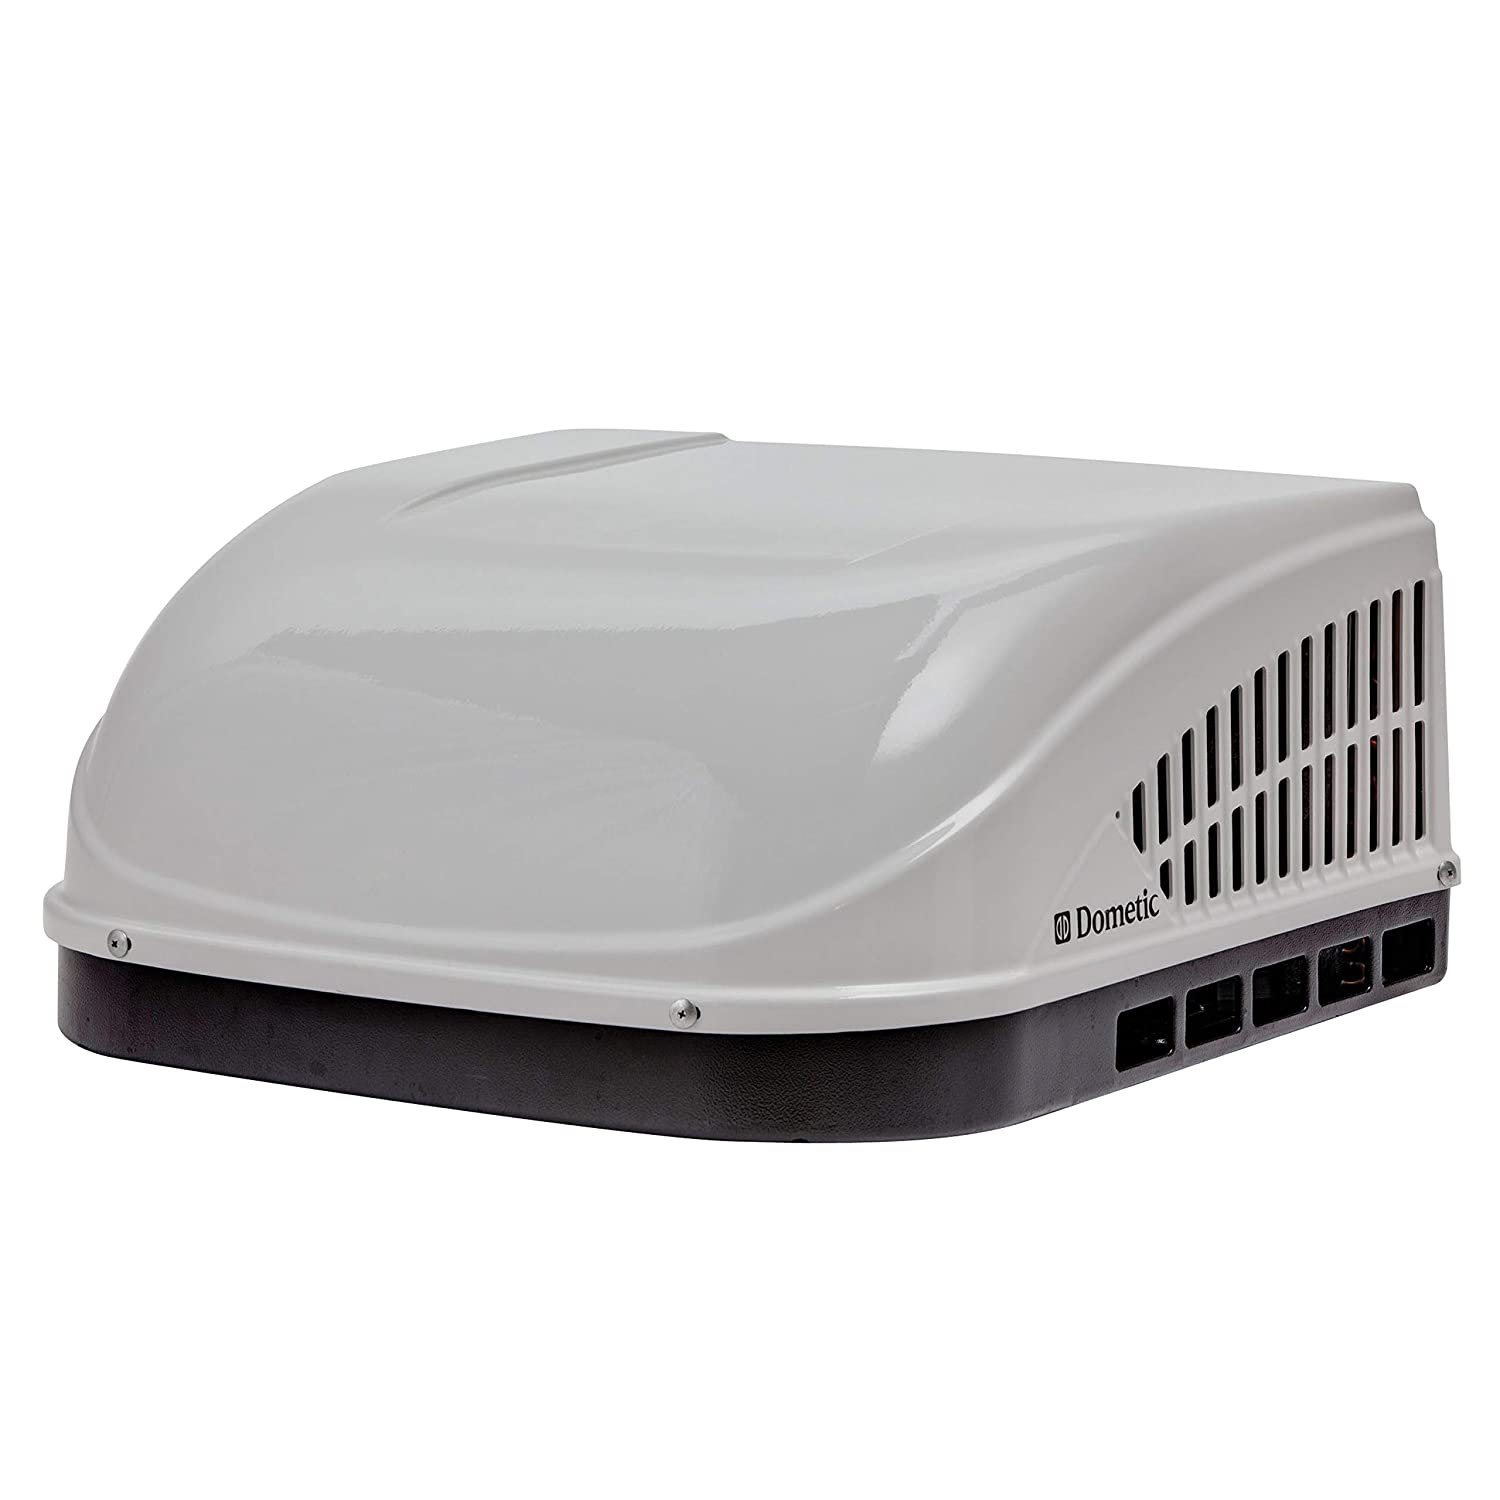 Dometic Polar White 13,500 BTU}